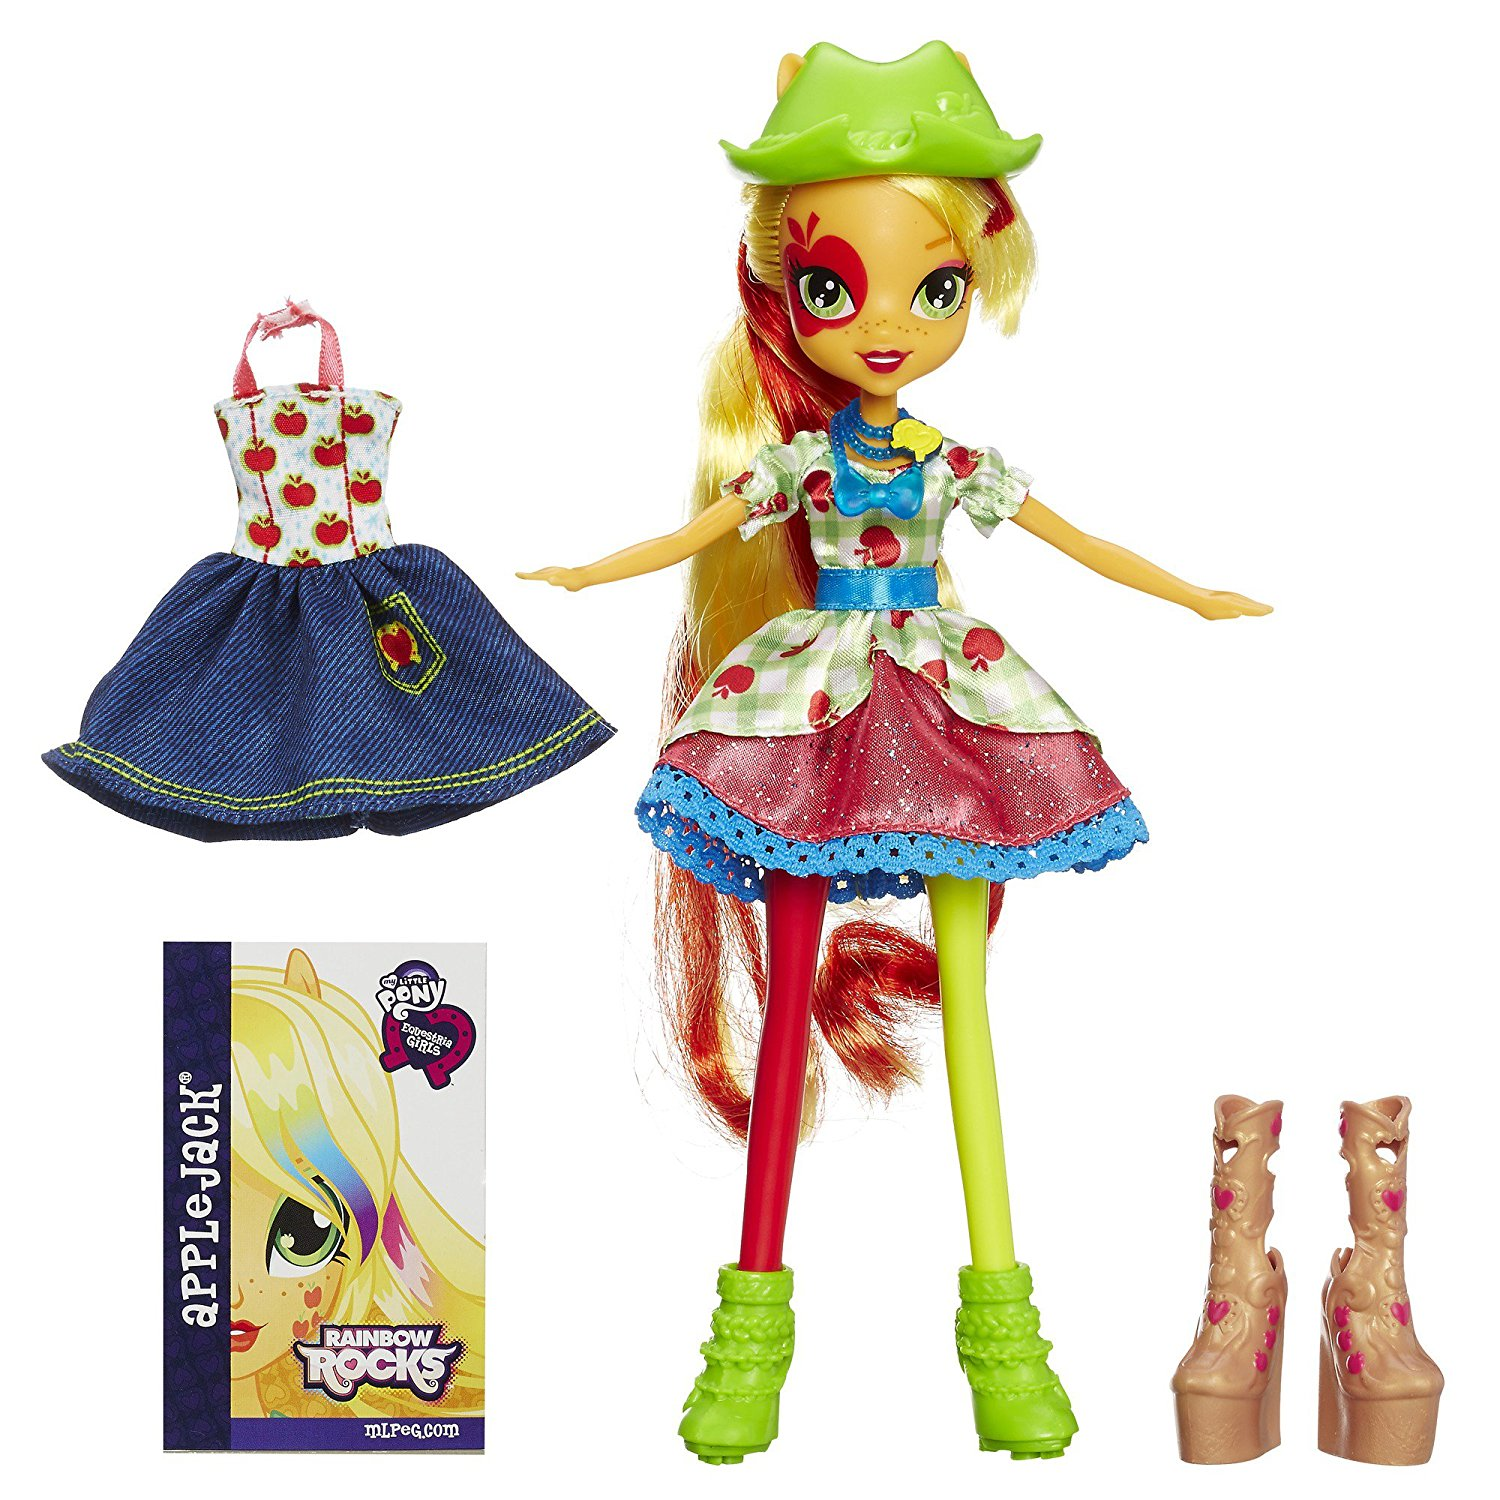 Equestria Girls Rainbow Rocks Applejack Doll with Fashions, Equestria Girls doll is a rockin' concert girl By My Little Pony Ship from US